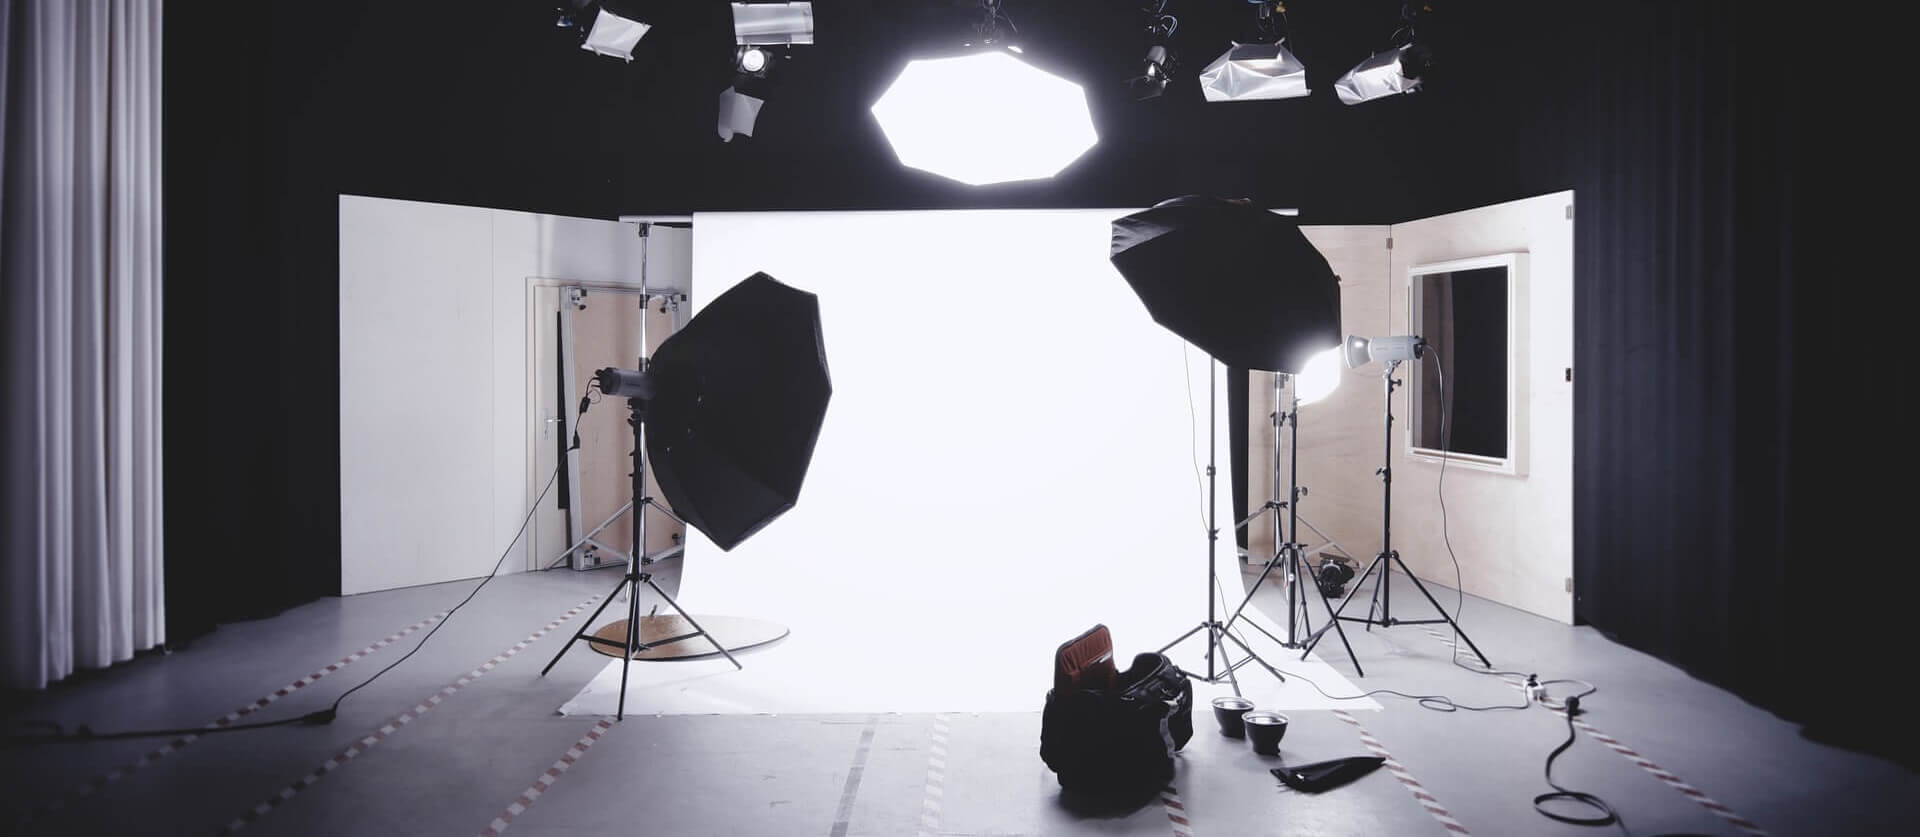 Video Studio Equipment